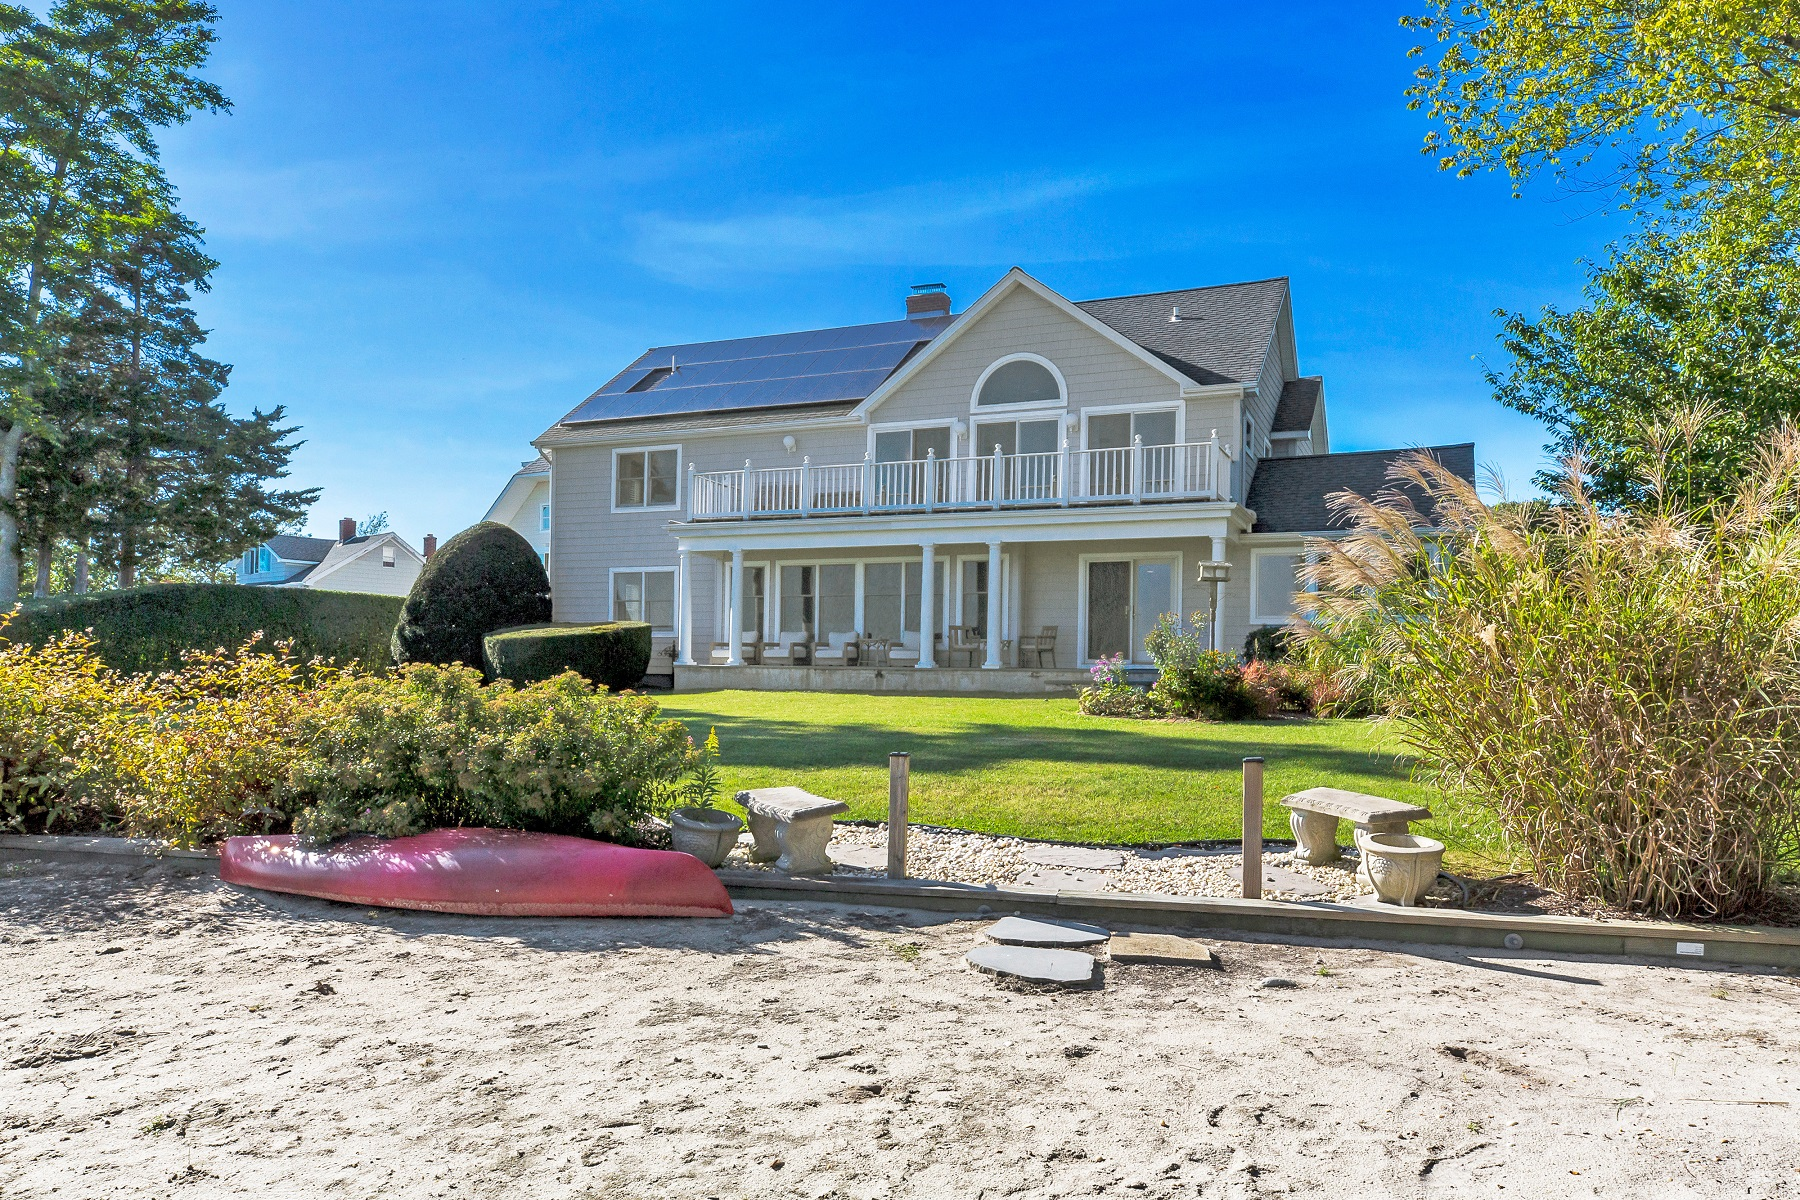 Single Family Homes for Active at Aquebogue 53 Harbor Rd Aquebogue, New York 11931 United States